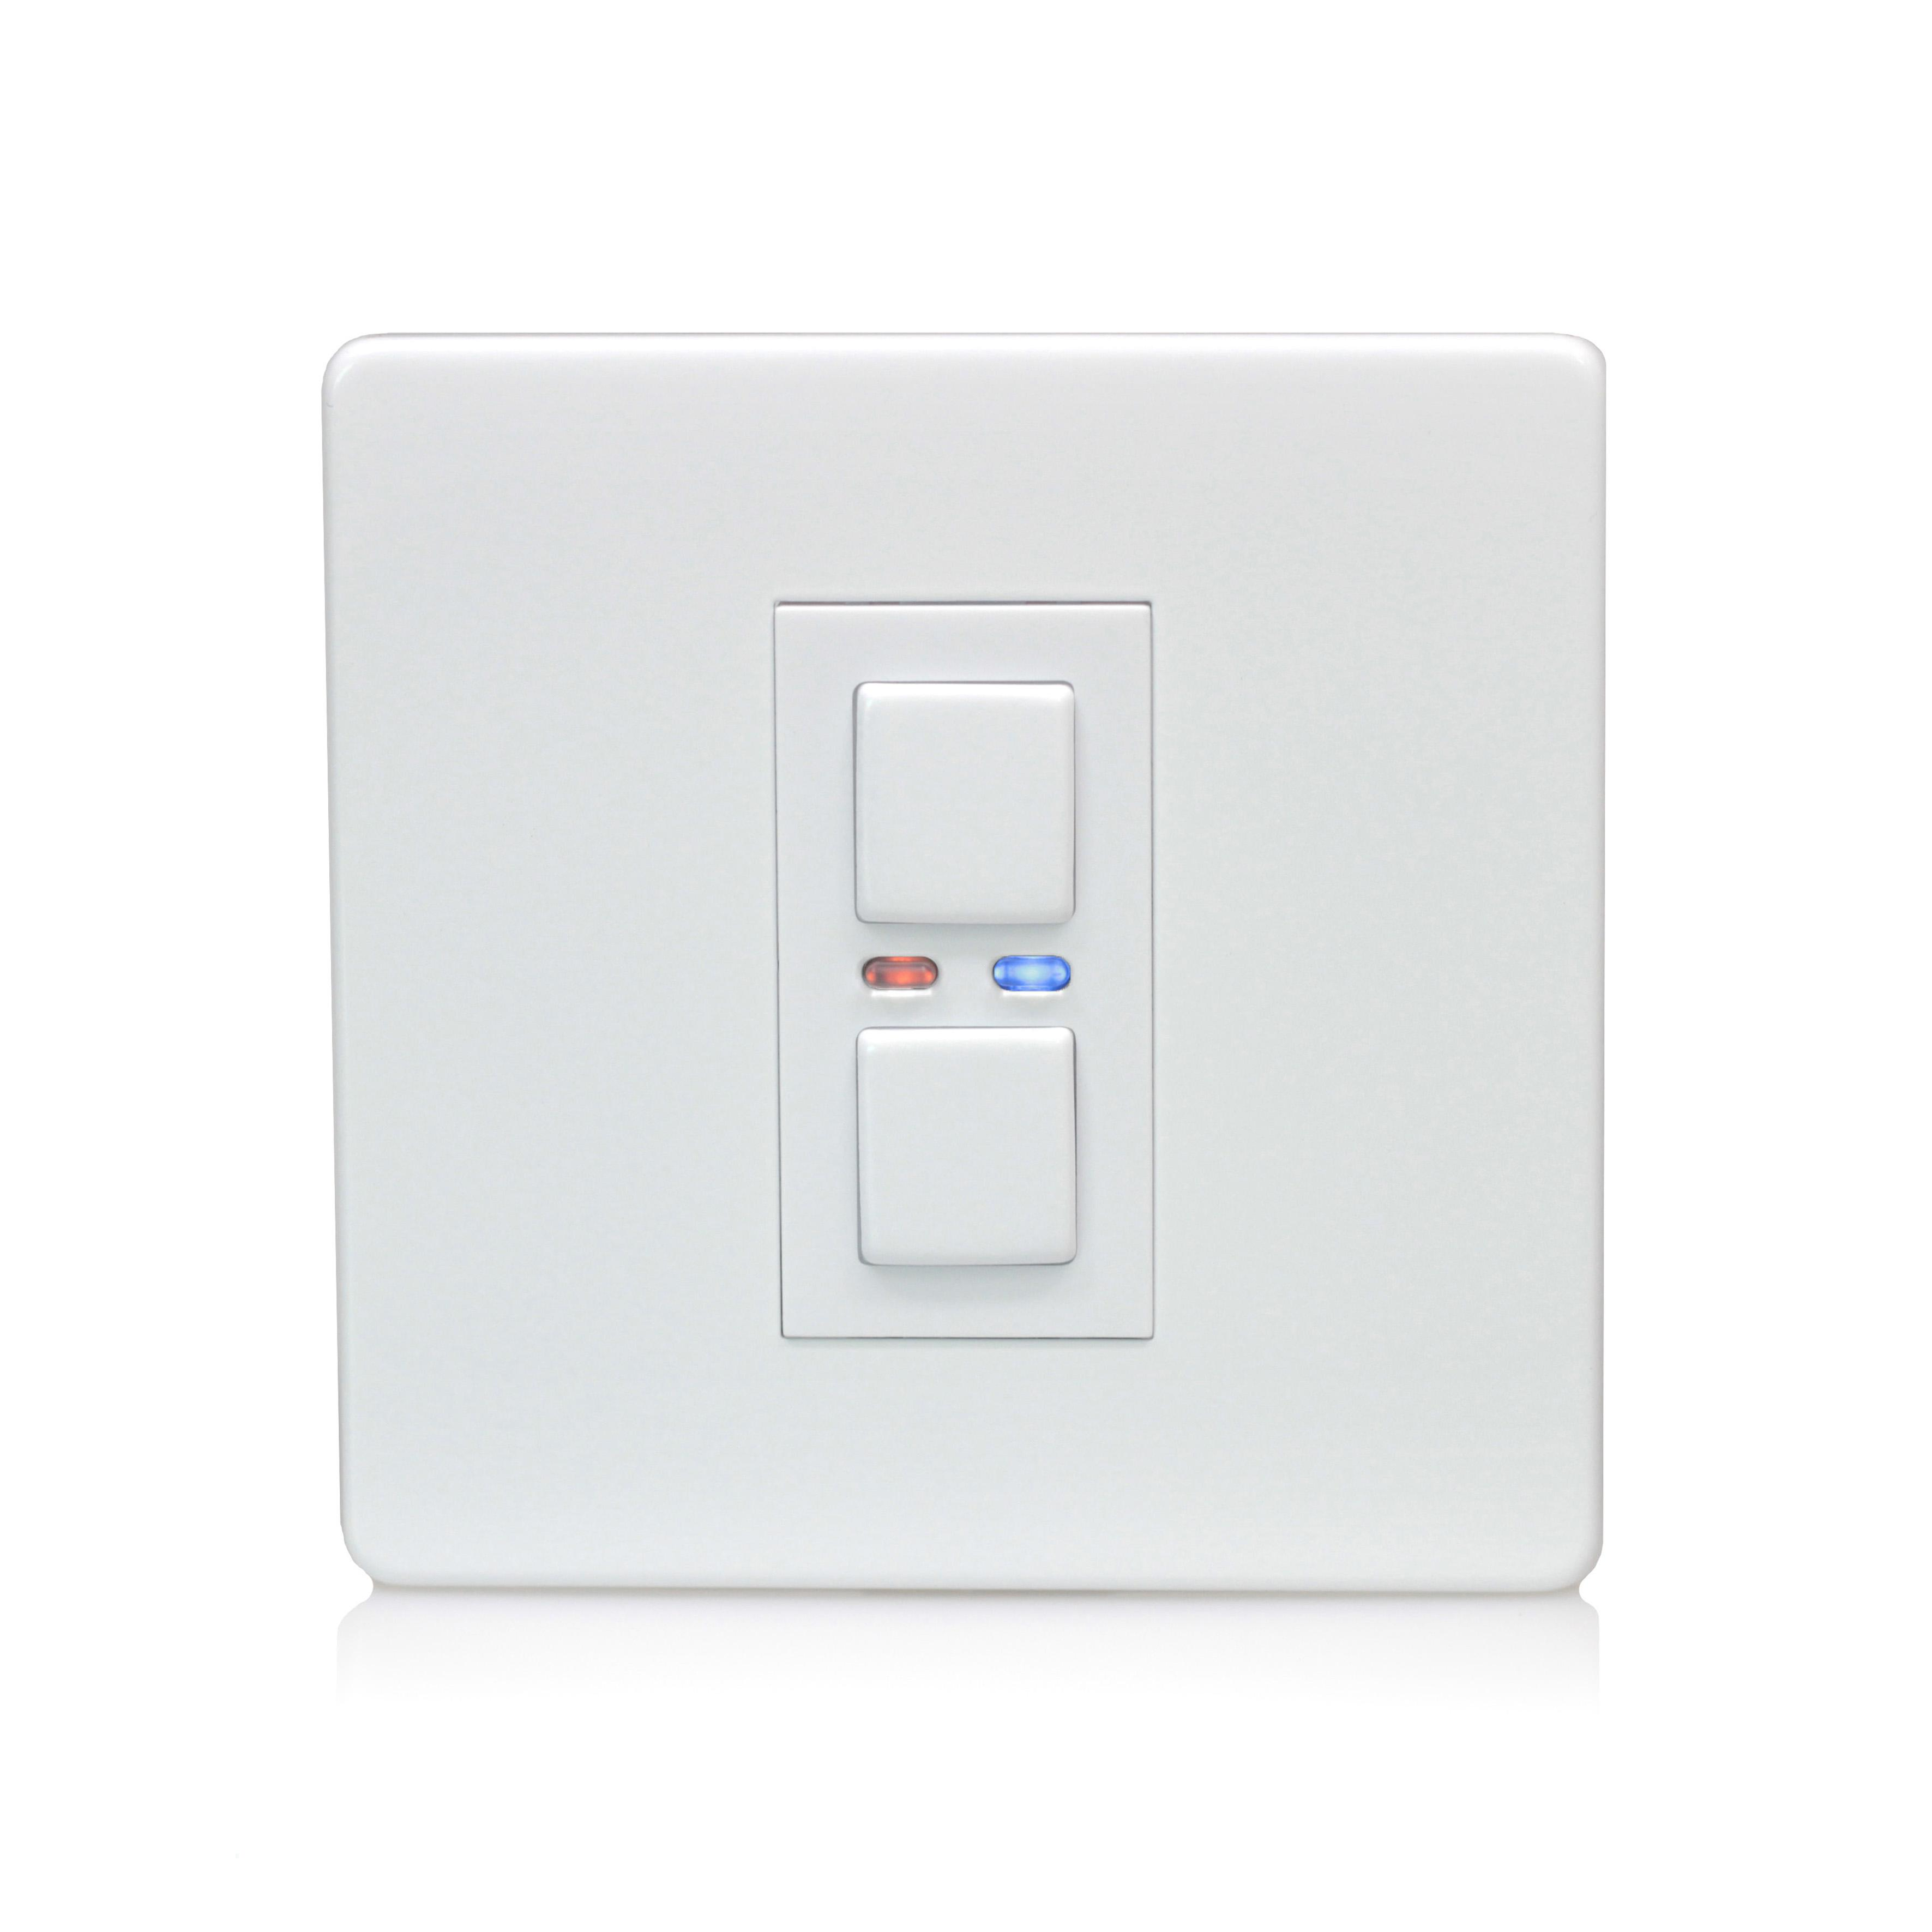 switch certified light tools dp alexa gateway uk reyrl mihome amazon diy required co compatible rf